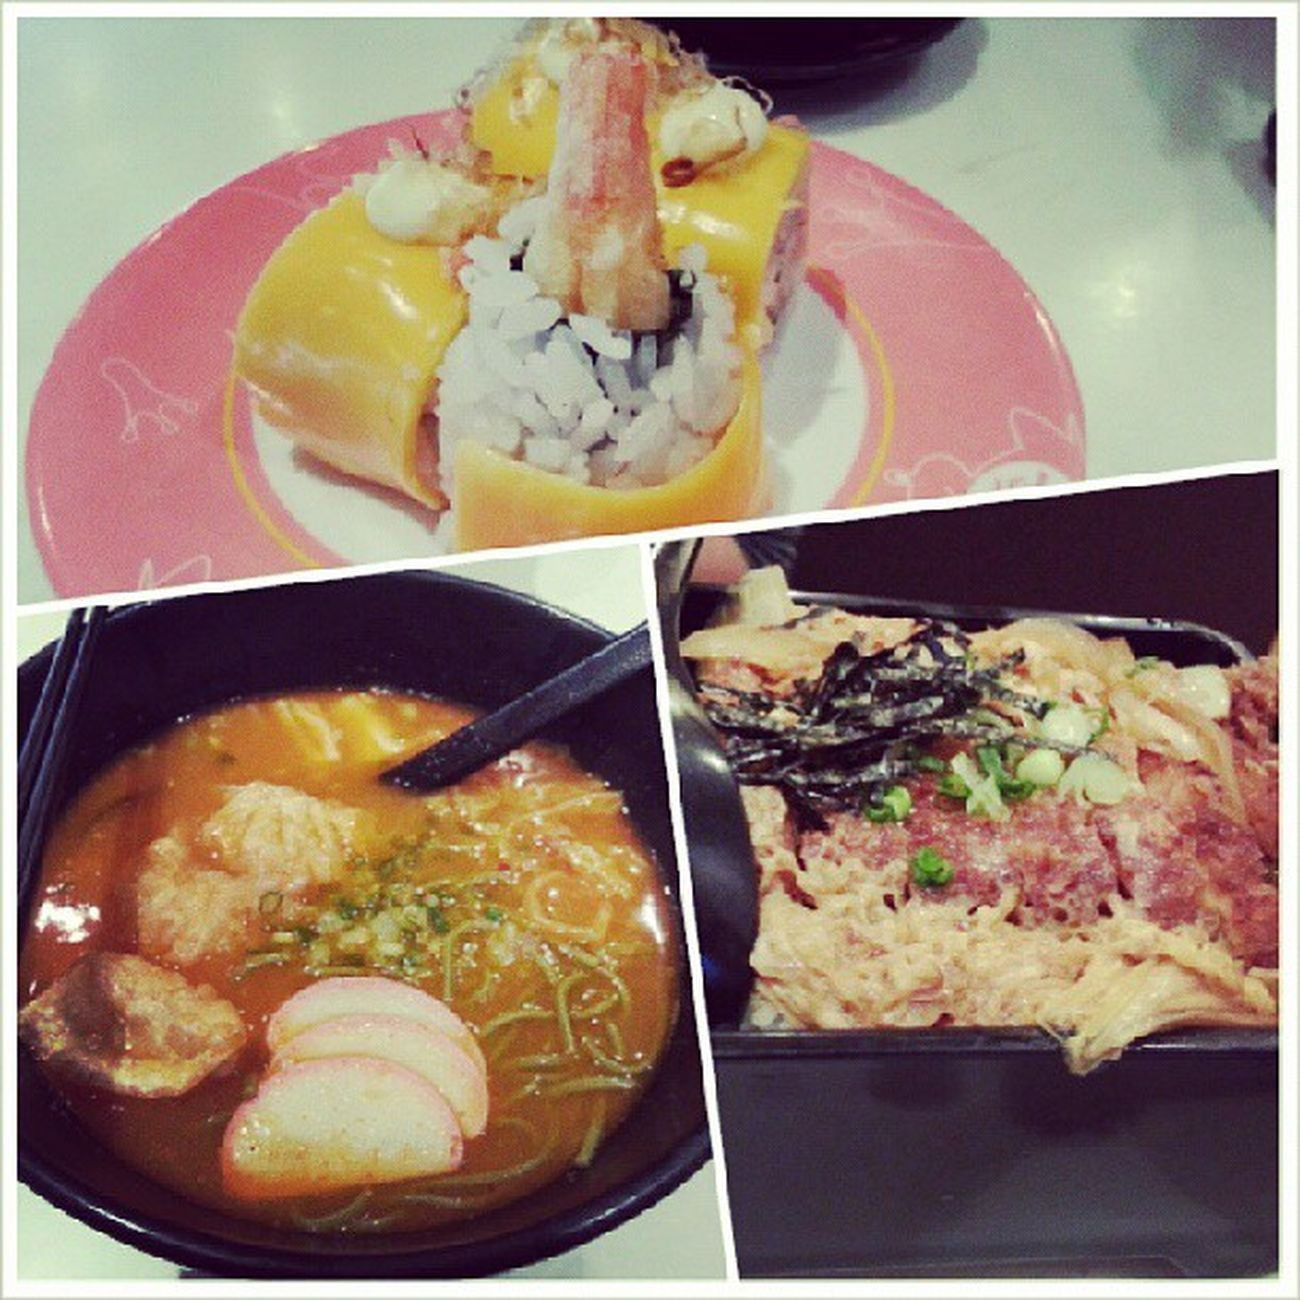 Sakae for lunch with @triciazayn ps: HAHA We really know how to spend our money LOL.Lunch Nearworkplace Sushi YumYum